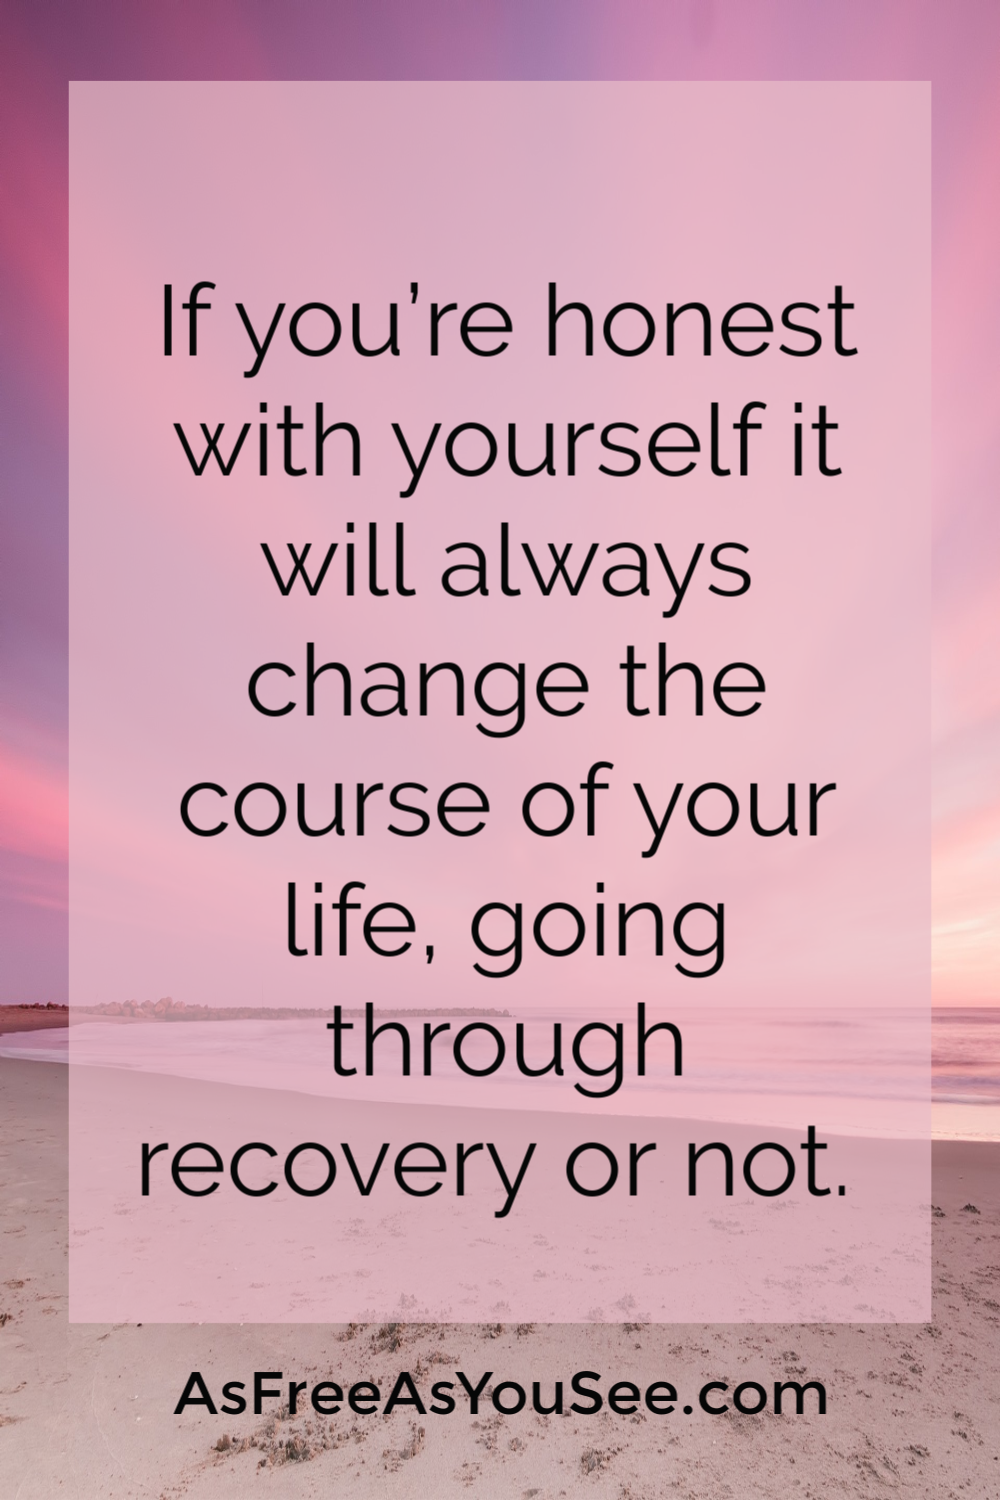 The 3 Most Important Things You Can do on the Road to Recovery